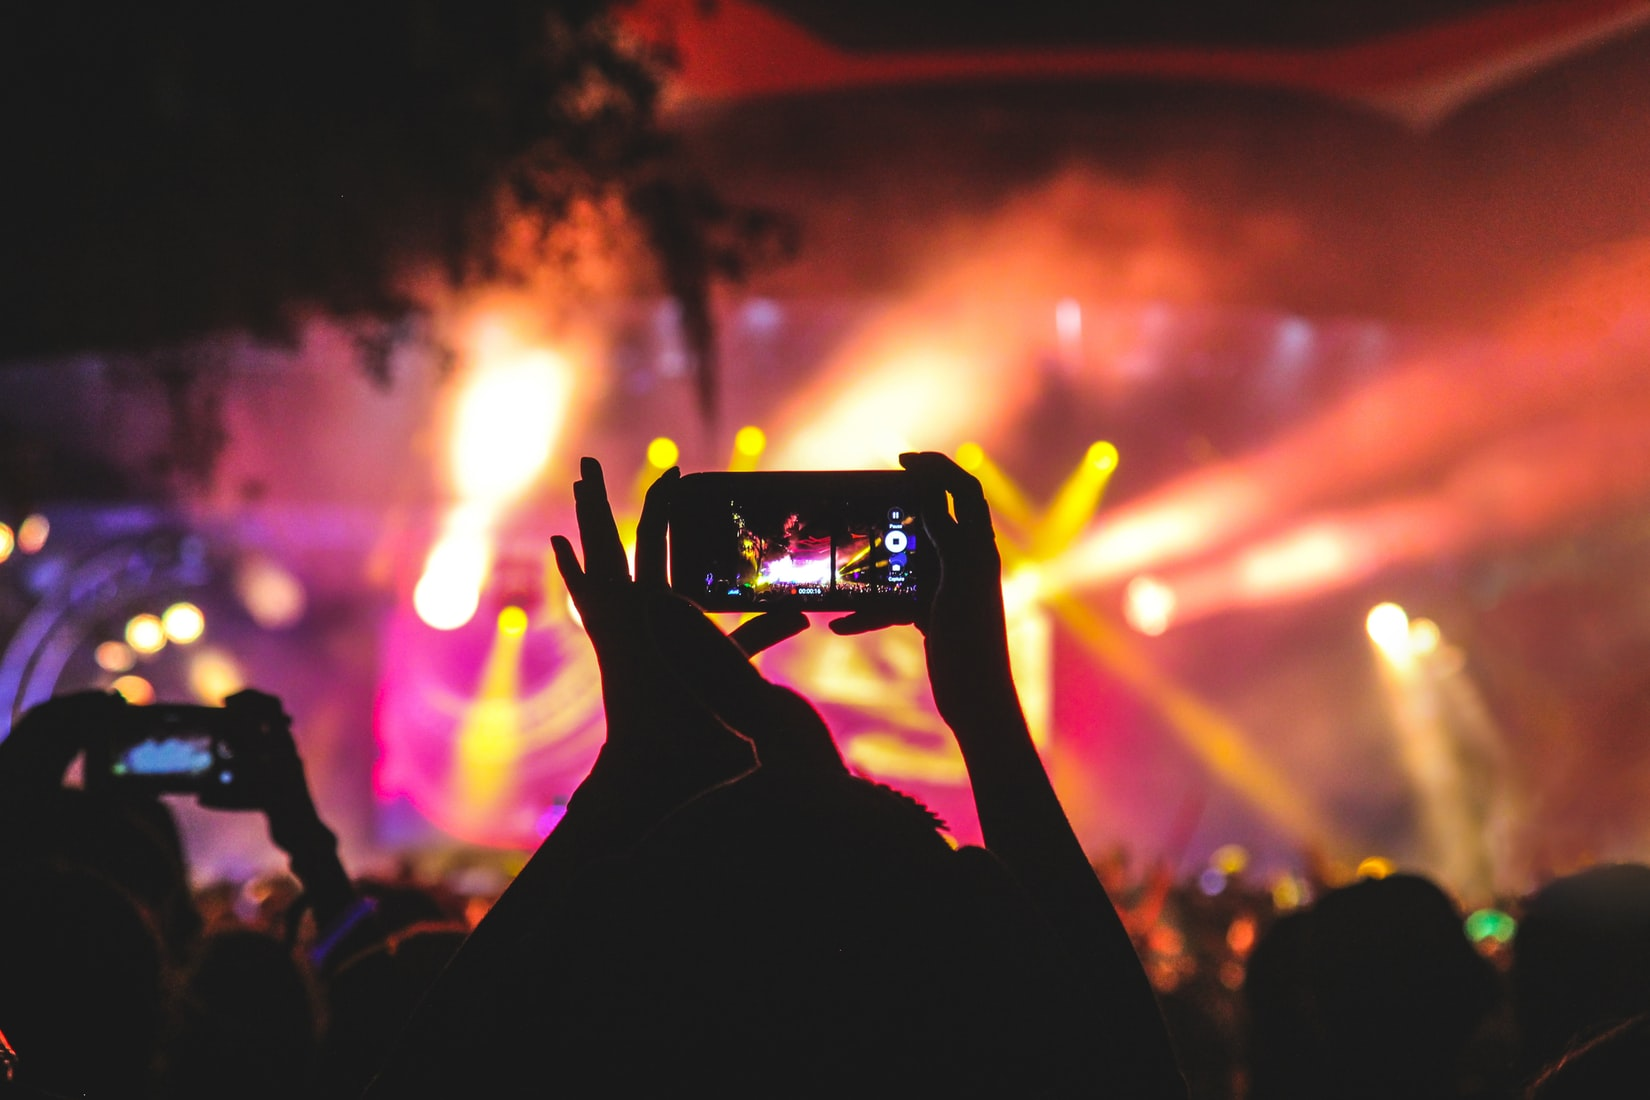 an image of a pair of hands holding a cell phone to take a picture at a concert